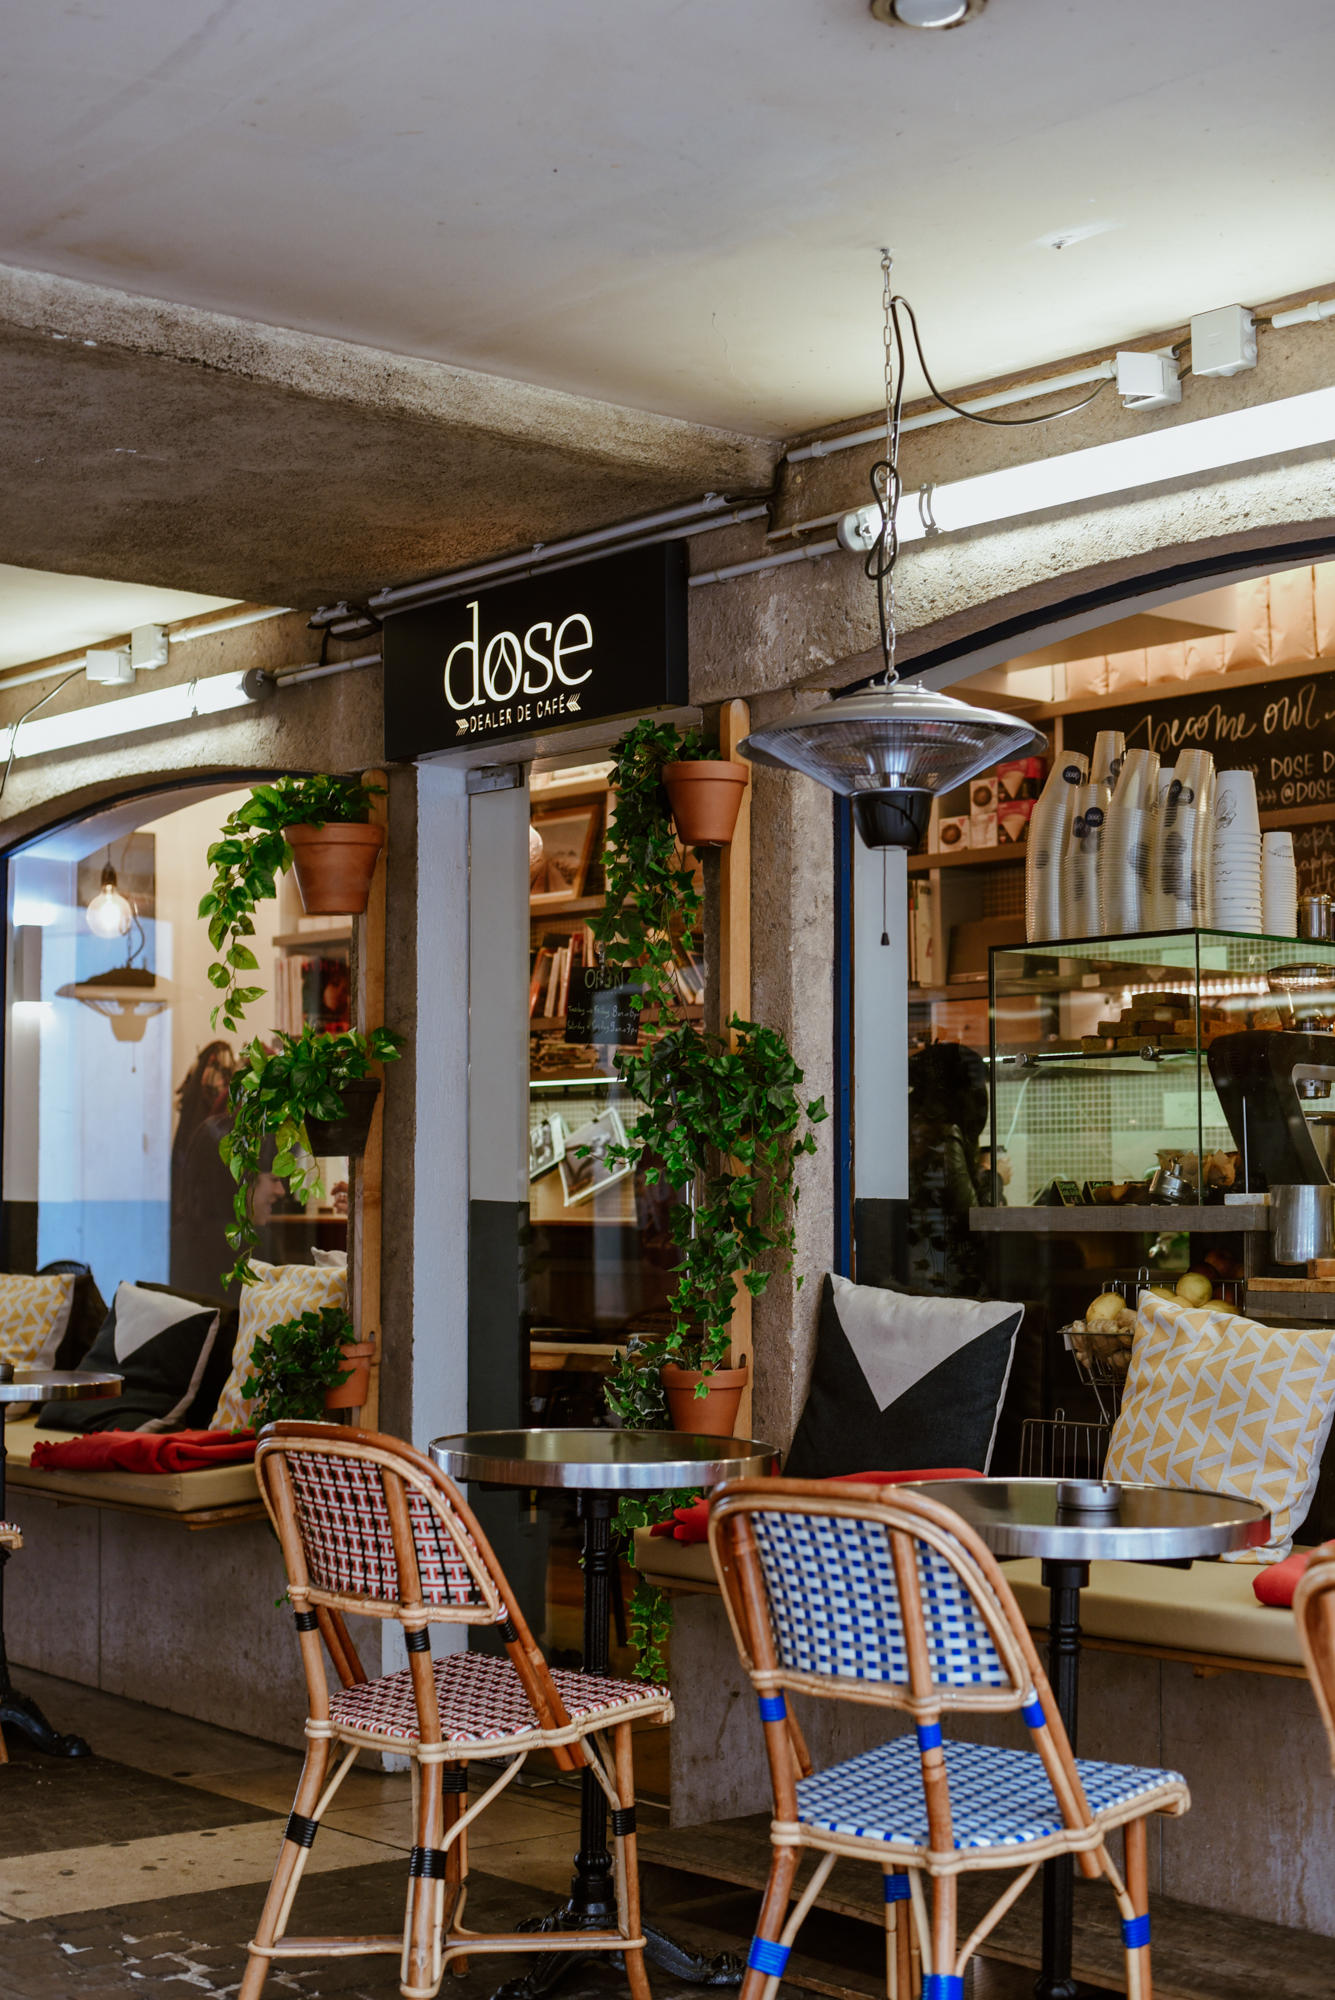 dose cafe on rue mouffetard paris